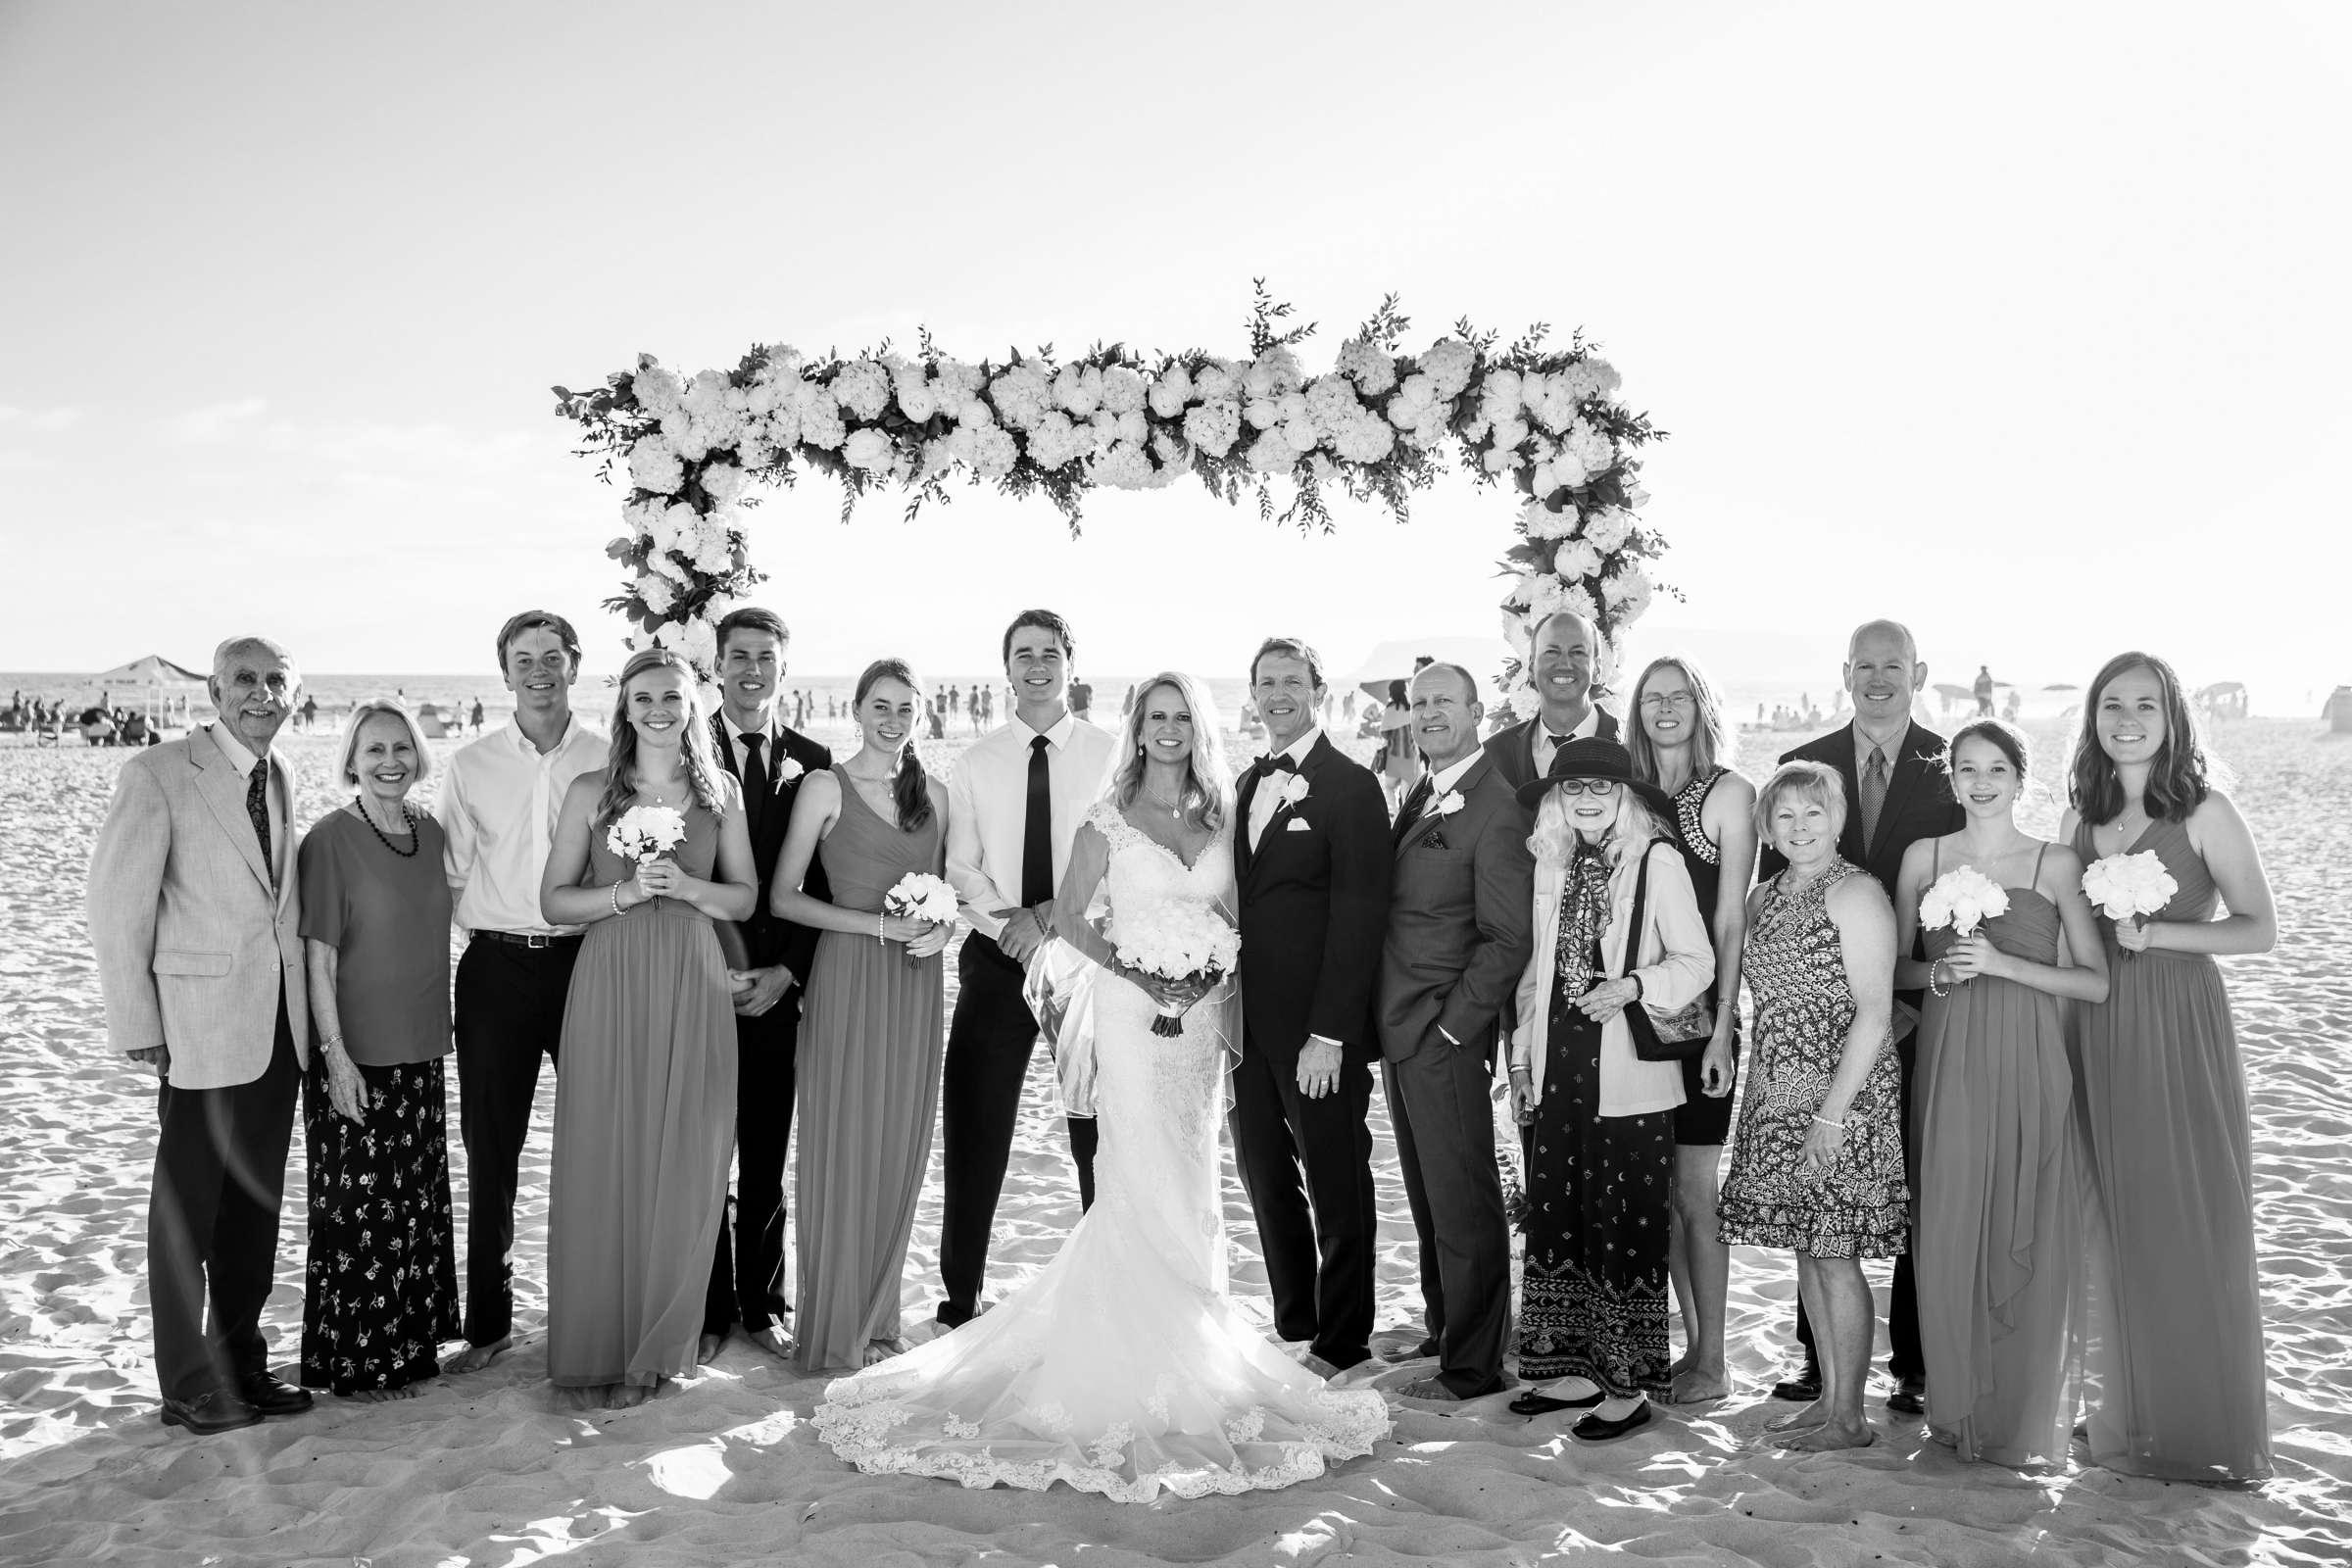 Hotel Del Coronado Wedding coordinated by Creative Affairs Inc, Diane and Paul Wedding Photo #71 by True Photography